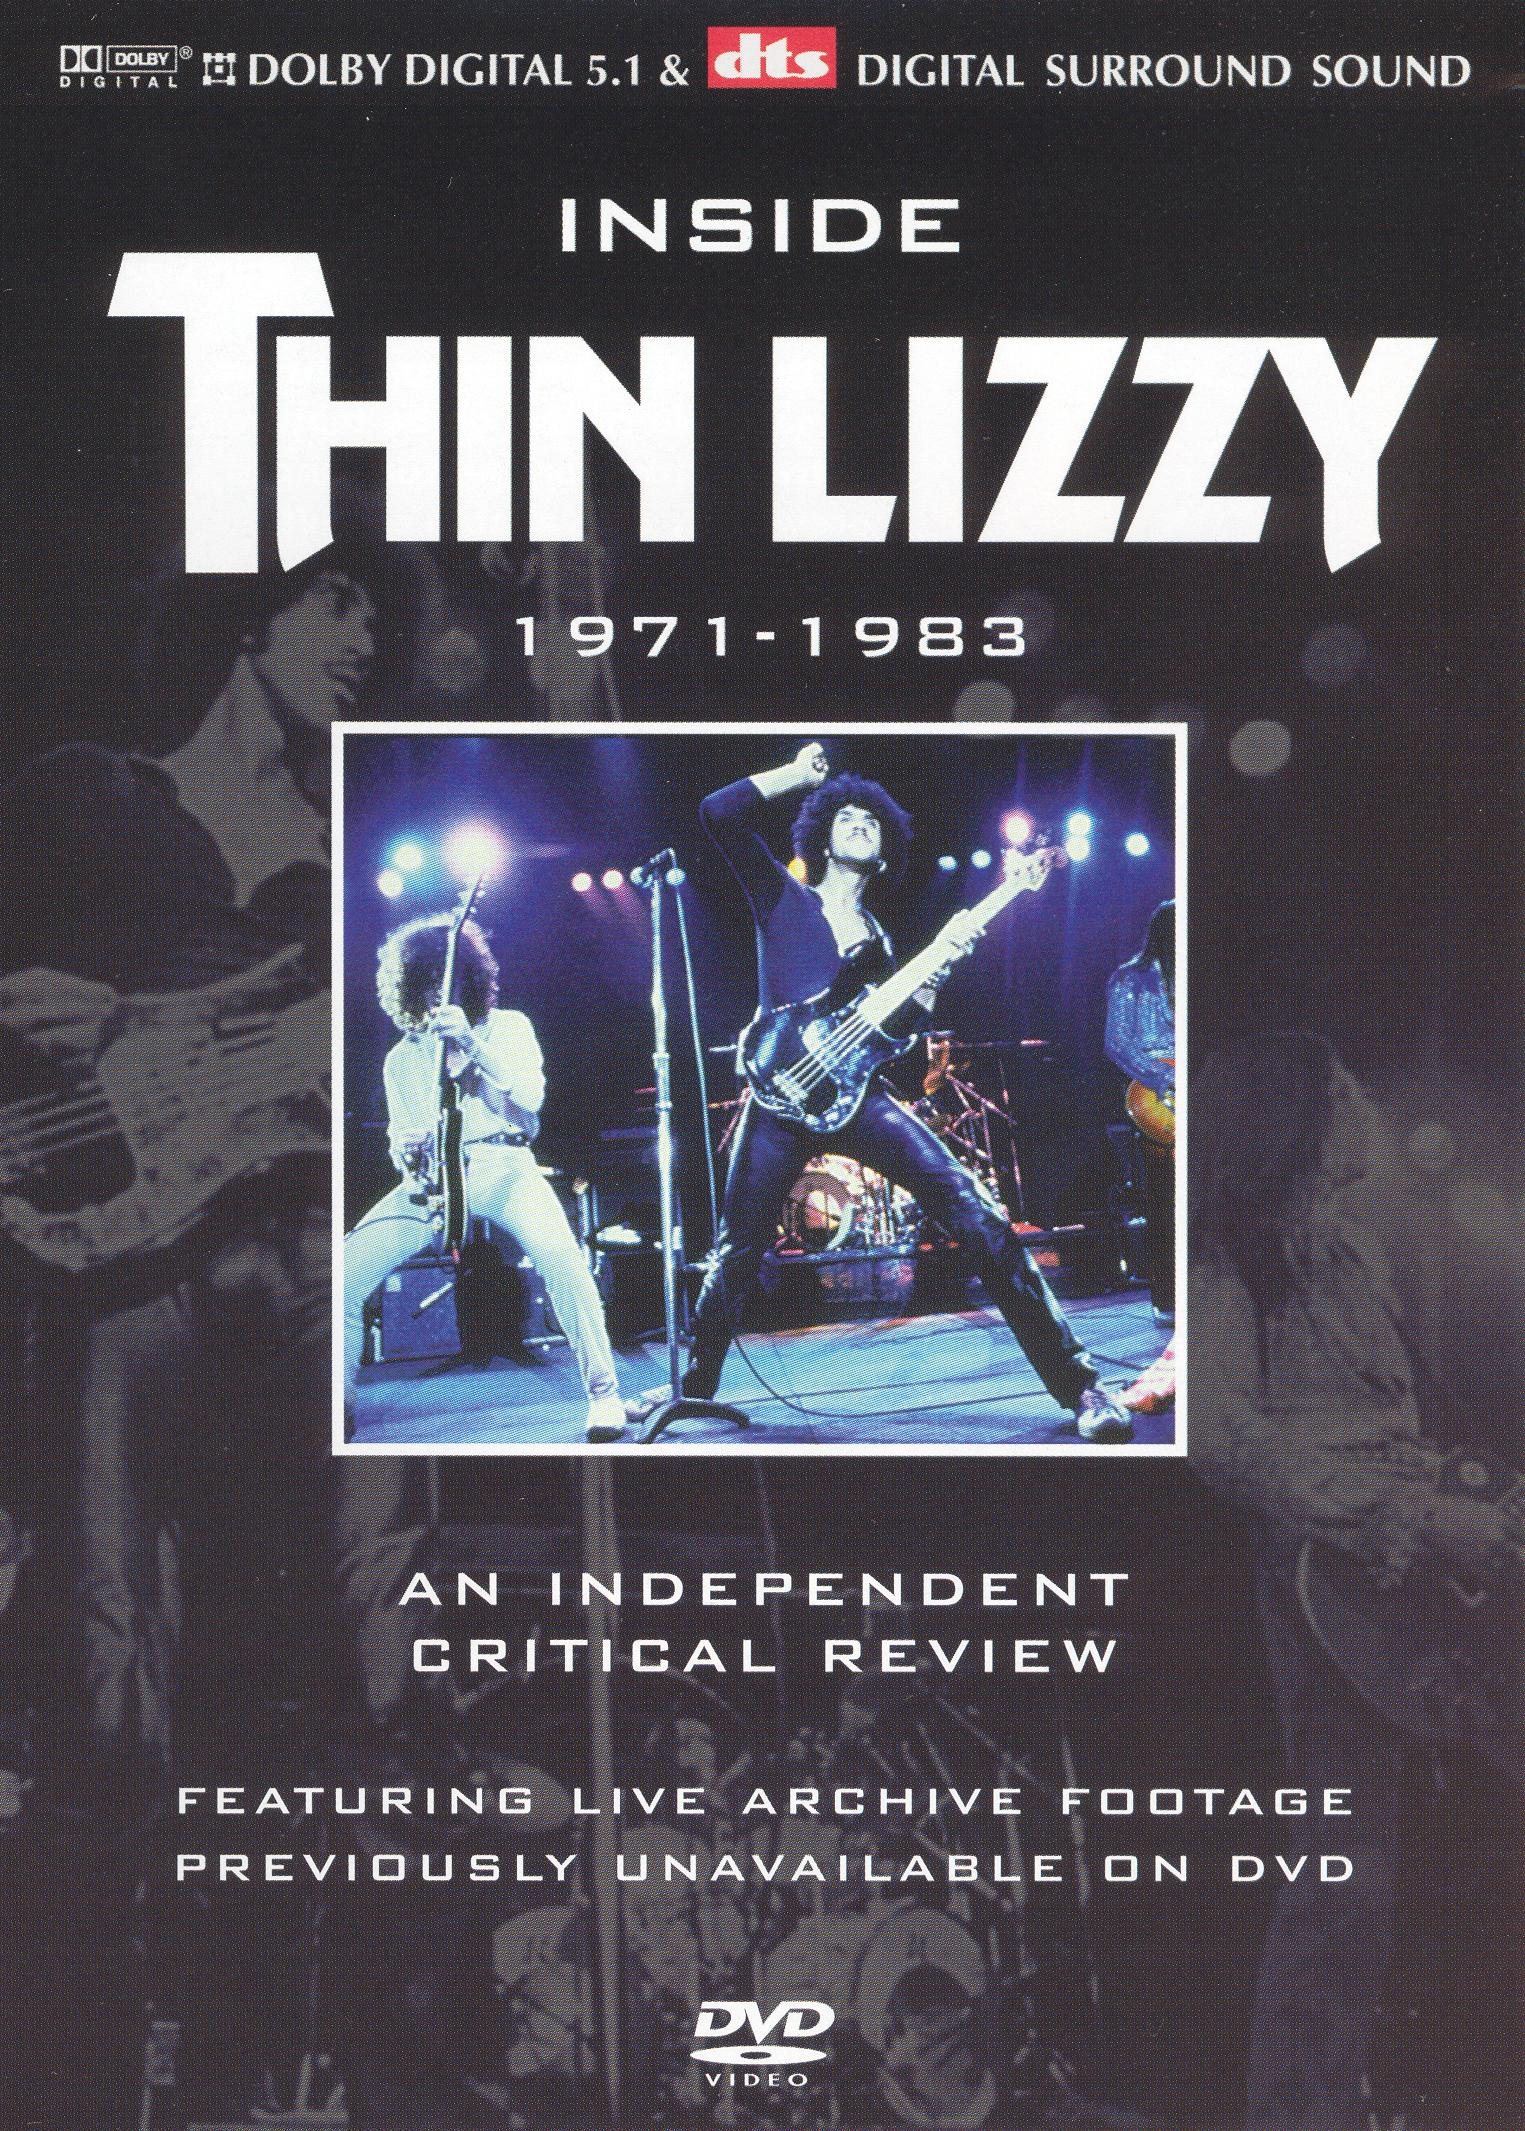 Inside Thin Lizzy: An Independant Critical Review - 1971-1983